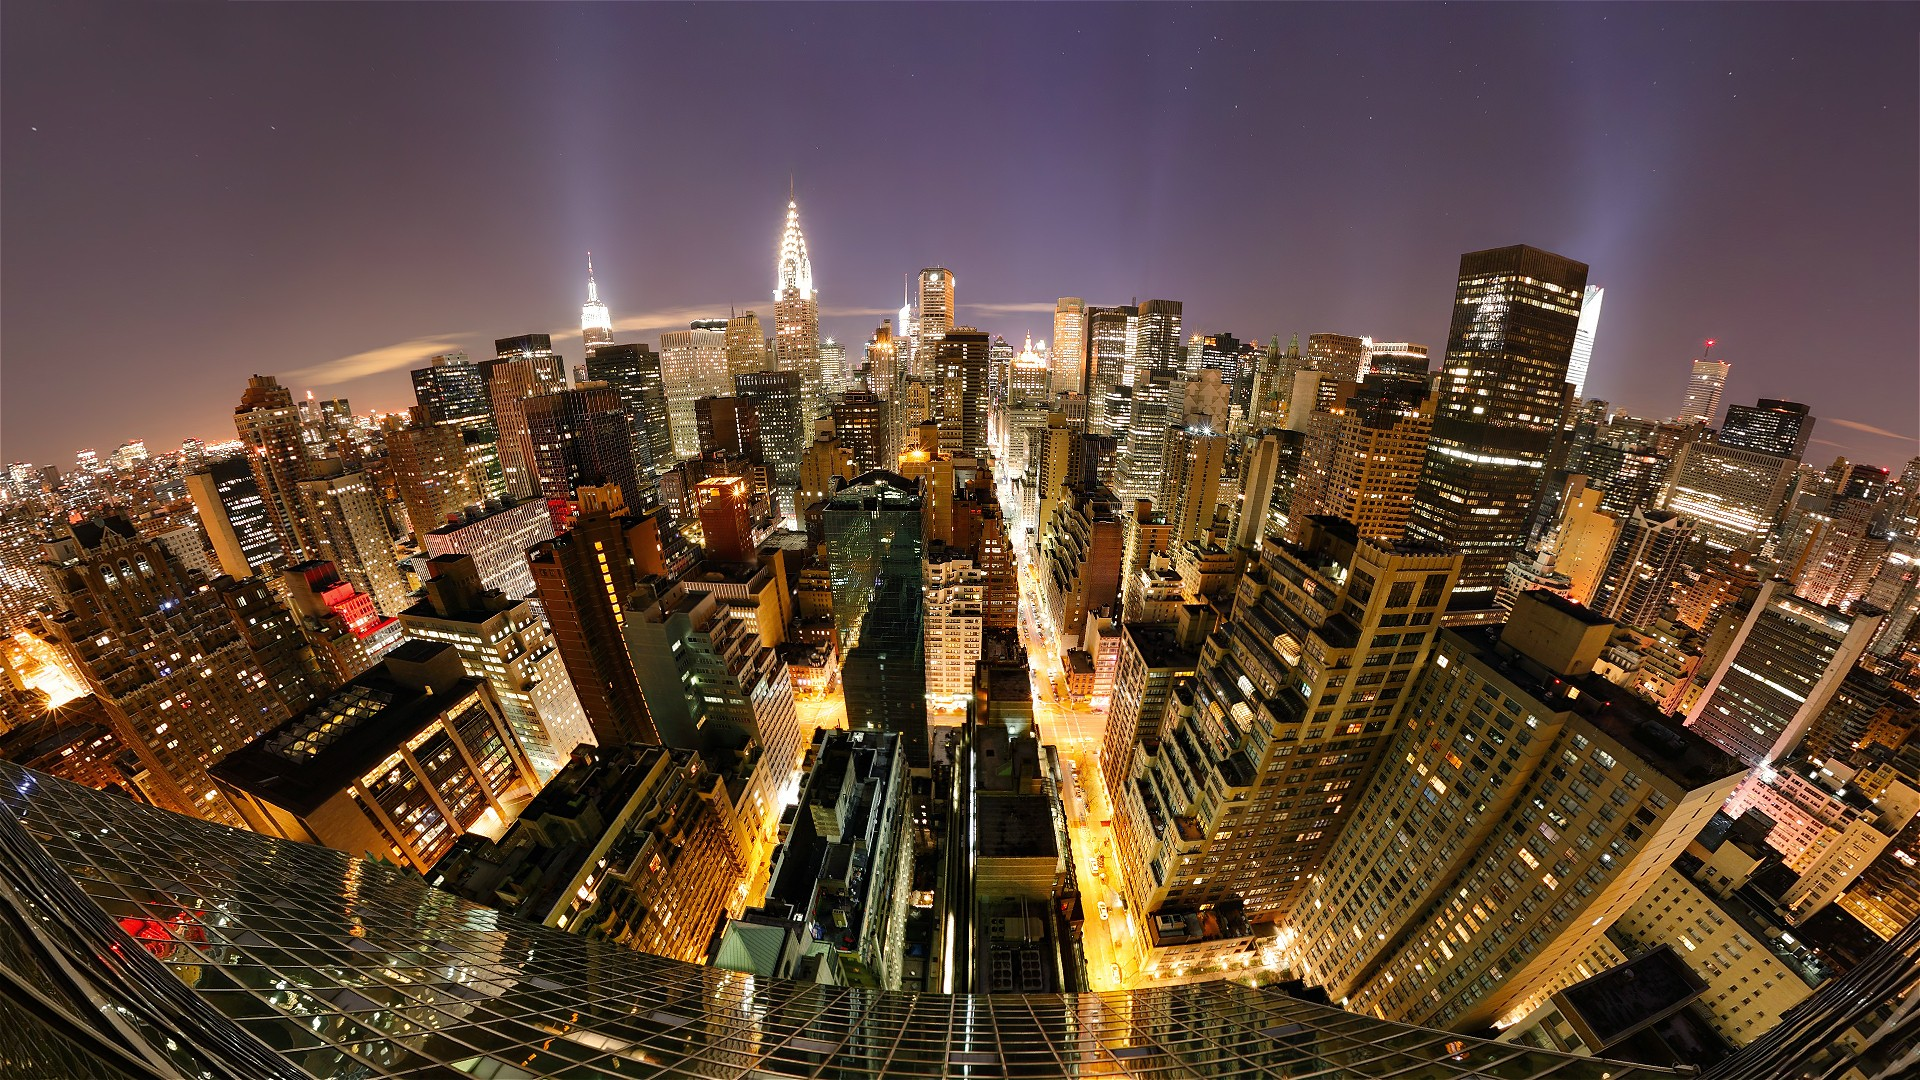 new york city pictures at night wallpaper new york city pictures at 1920x1080